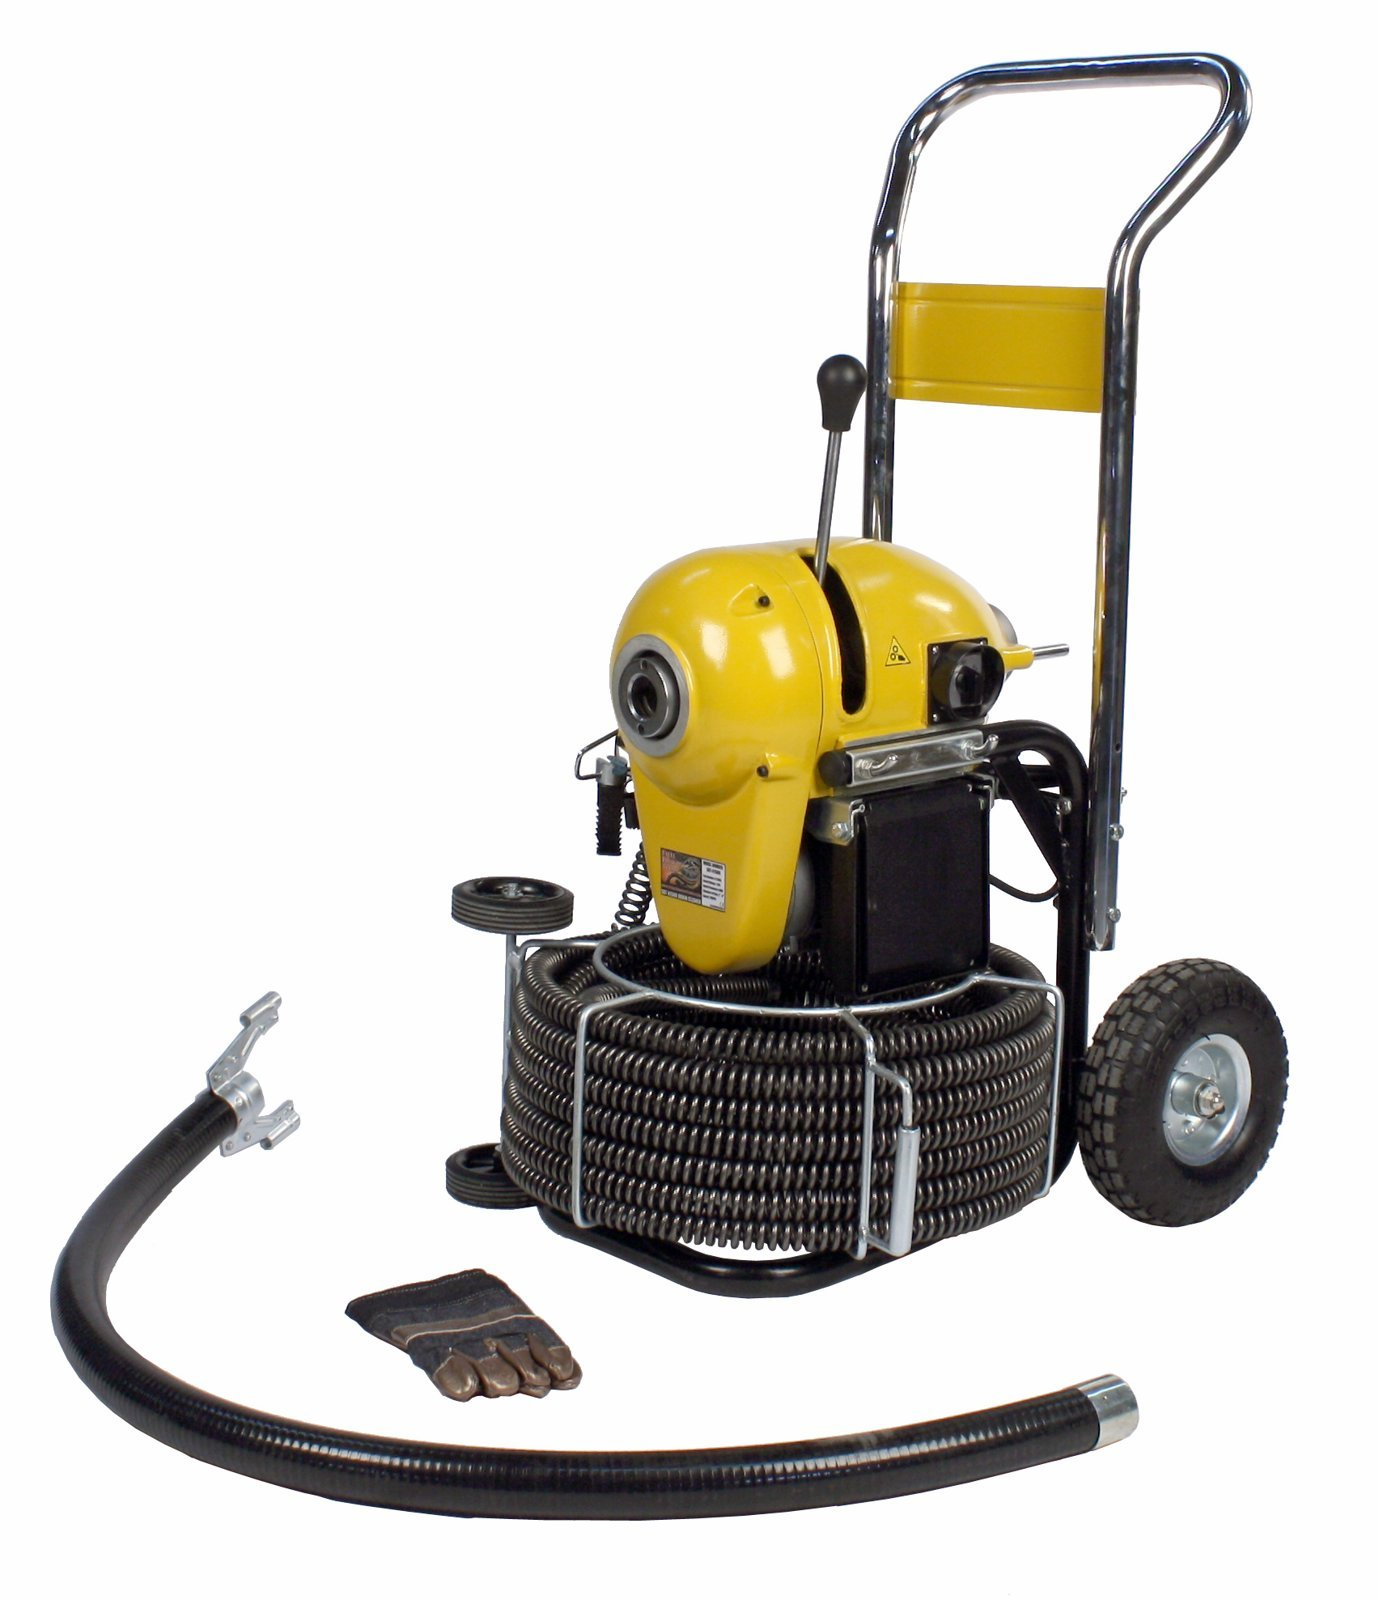 Steel Dragon Tools K1500A Sewer Line Pipe Drain Cleaning Machine fits RIDGID C-11 Snake Cable